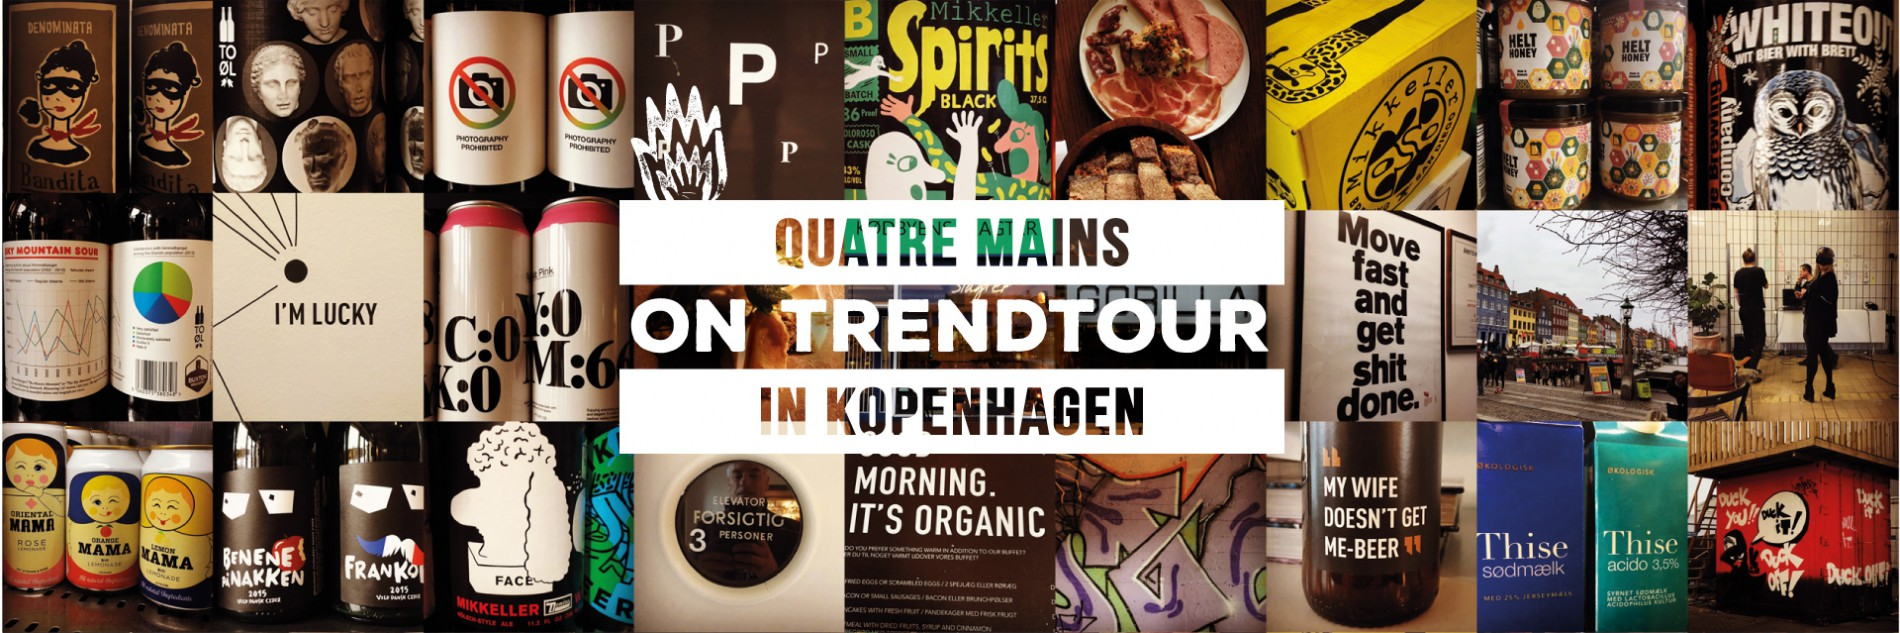 Quatre Mains package design - copenhagen, trend, tour, quatre mains